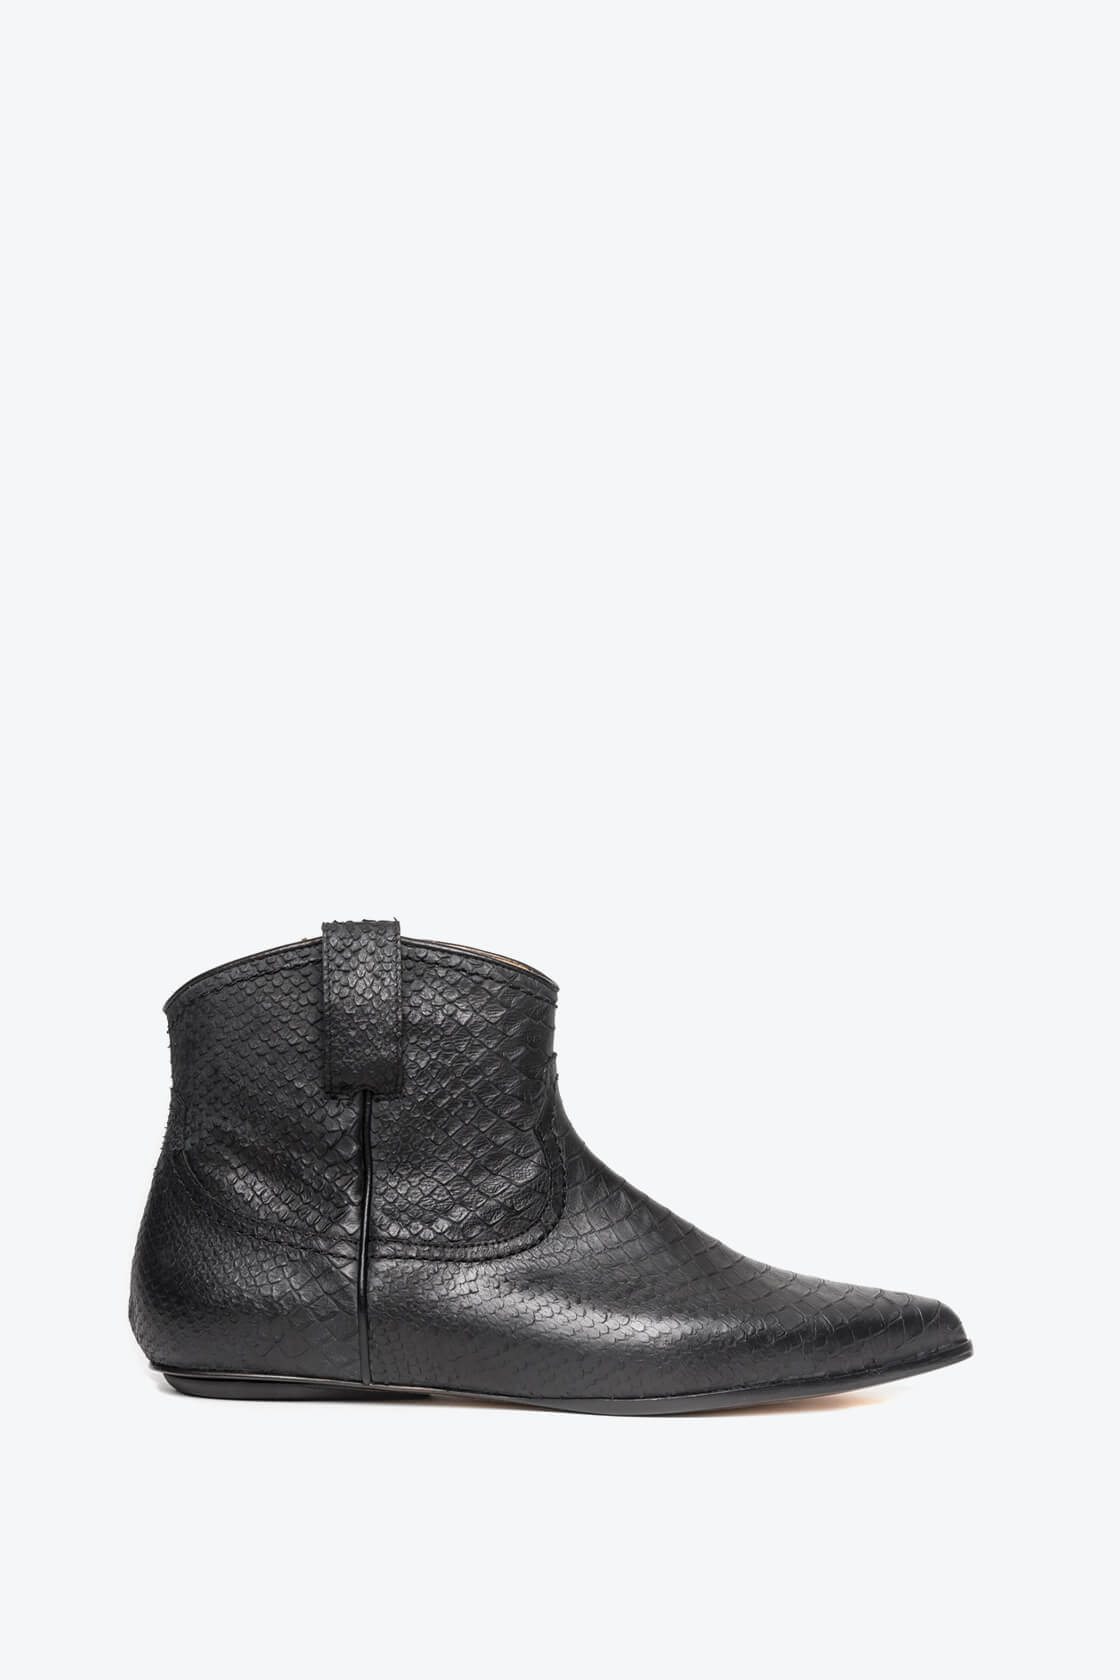 EJK0000052 Kenny western boot black python 1